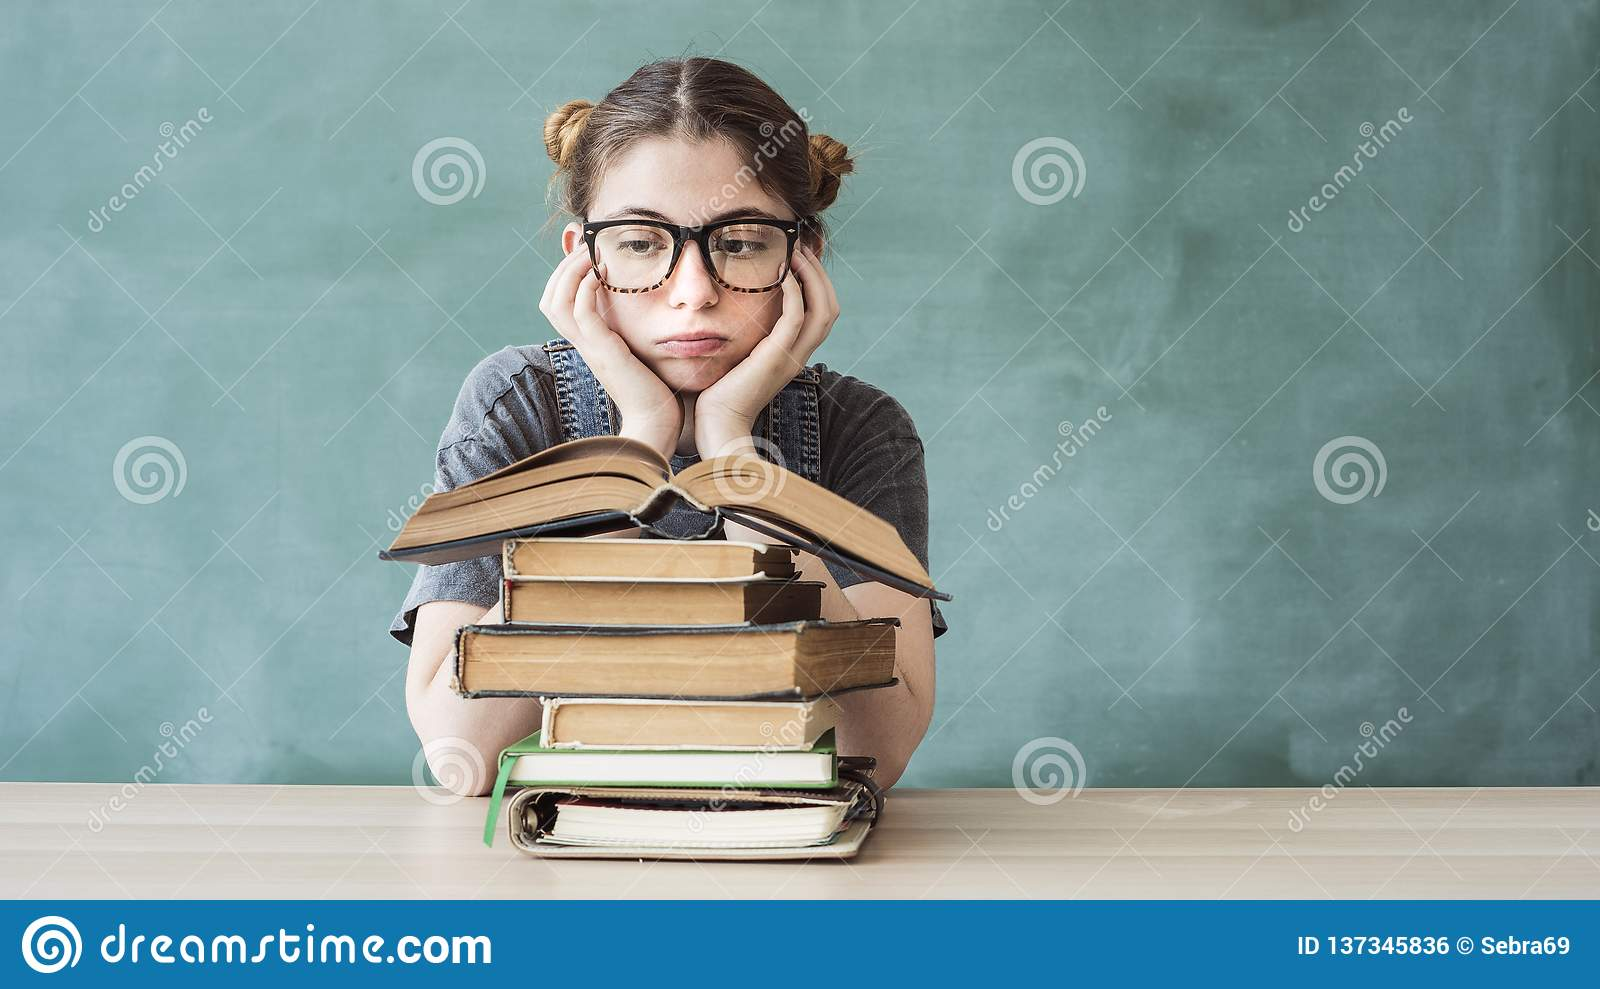 Bored young student girl with books